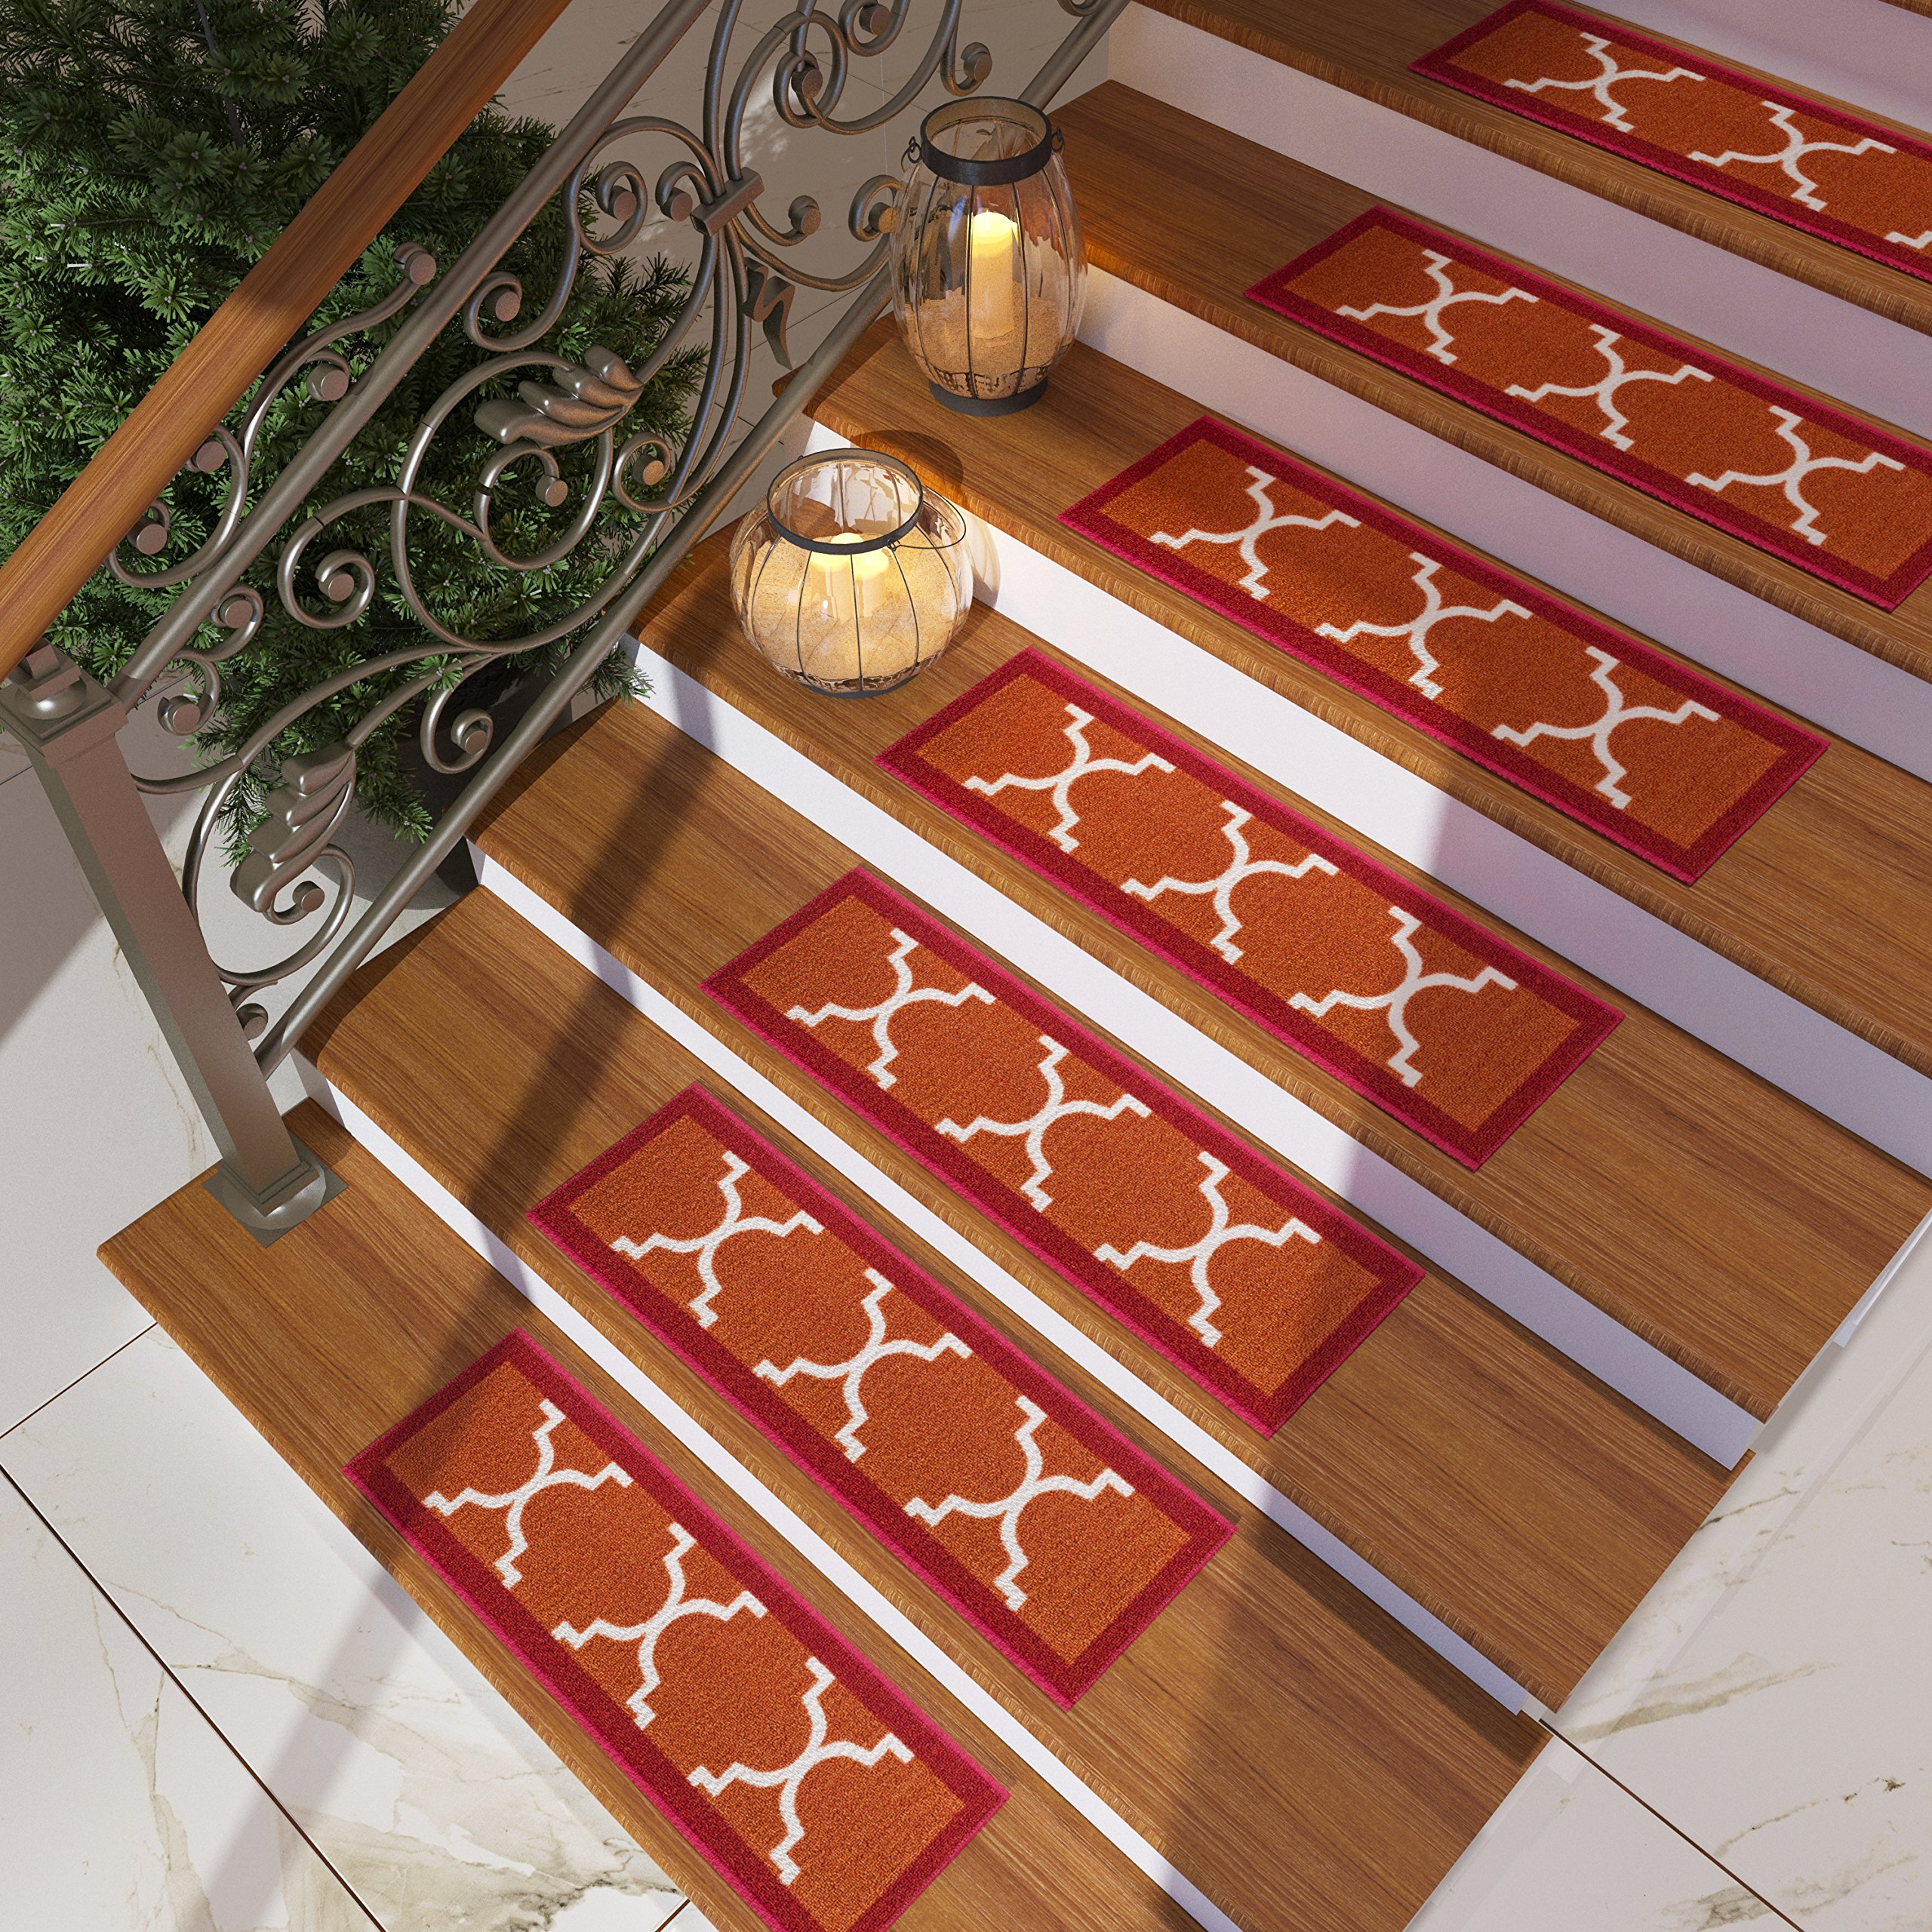 Ordinaire [Set Of 7] Red Stair Tread Rugs | Modern Design Trellis Lattice Carpet Pads